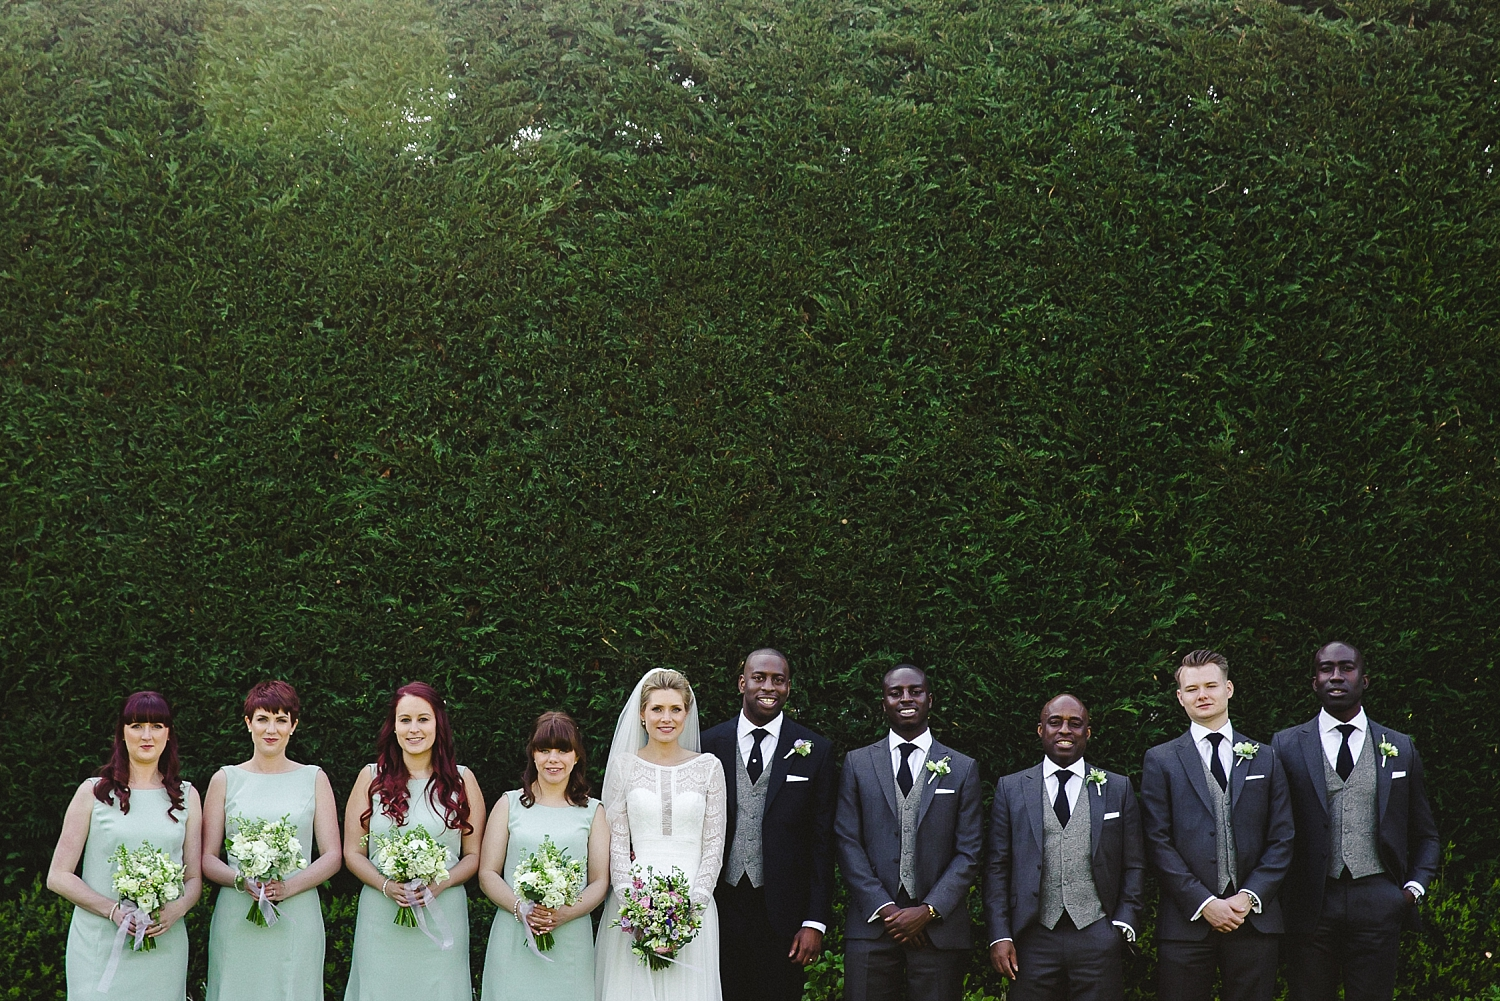 Gaynes Park Wedding Party Shot